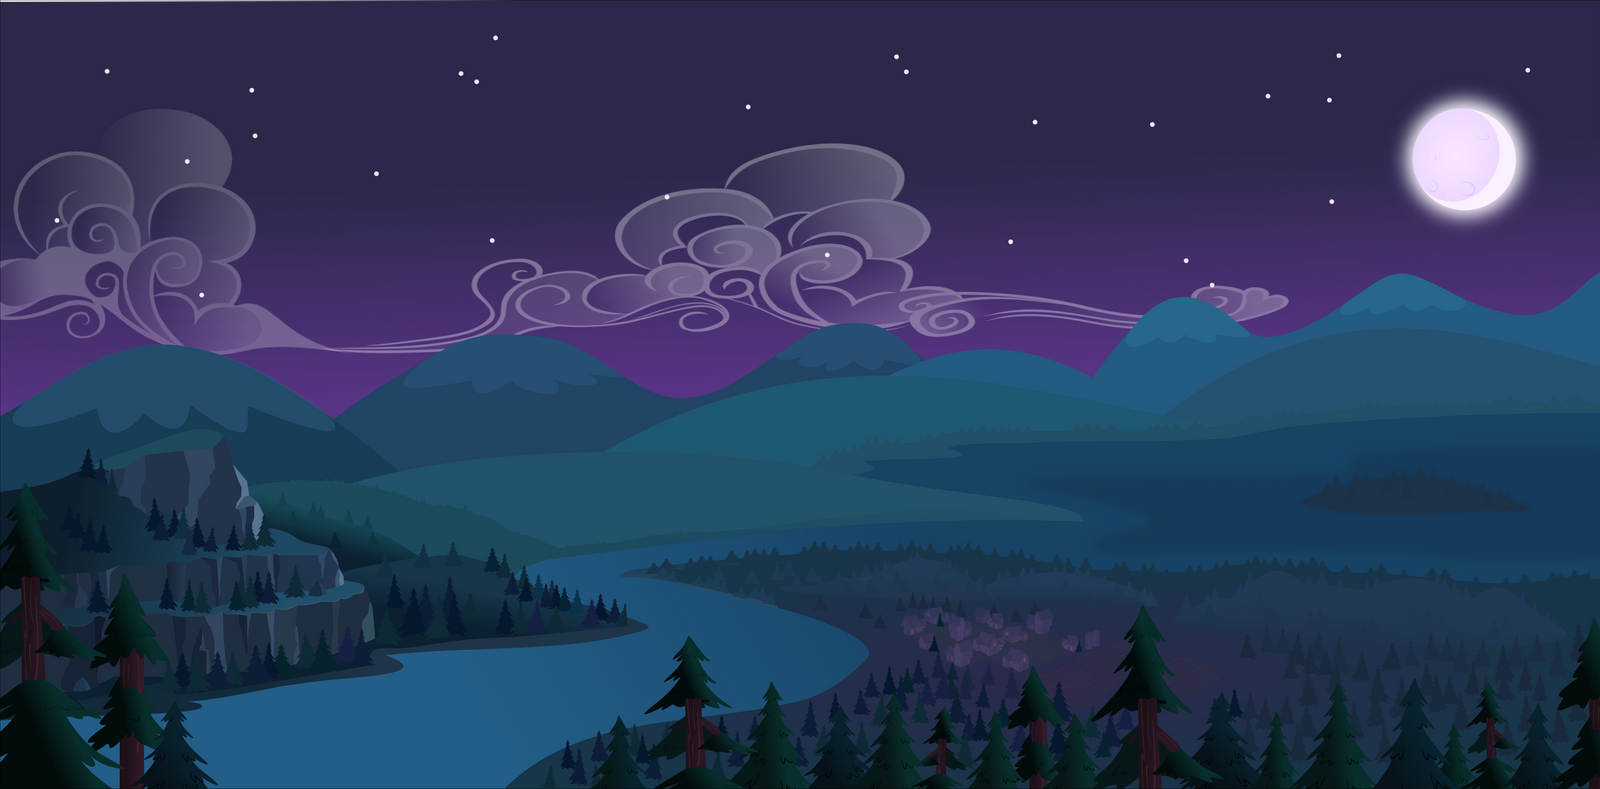 Sky+mountain+night Scene by matty4z